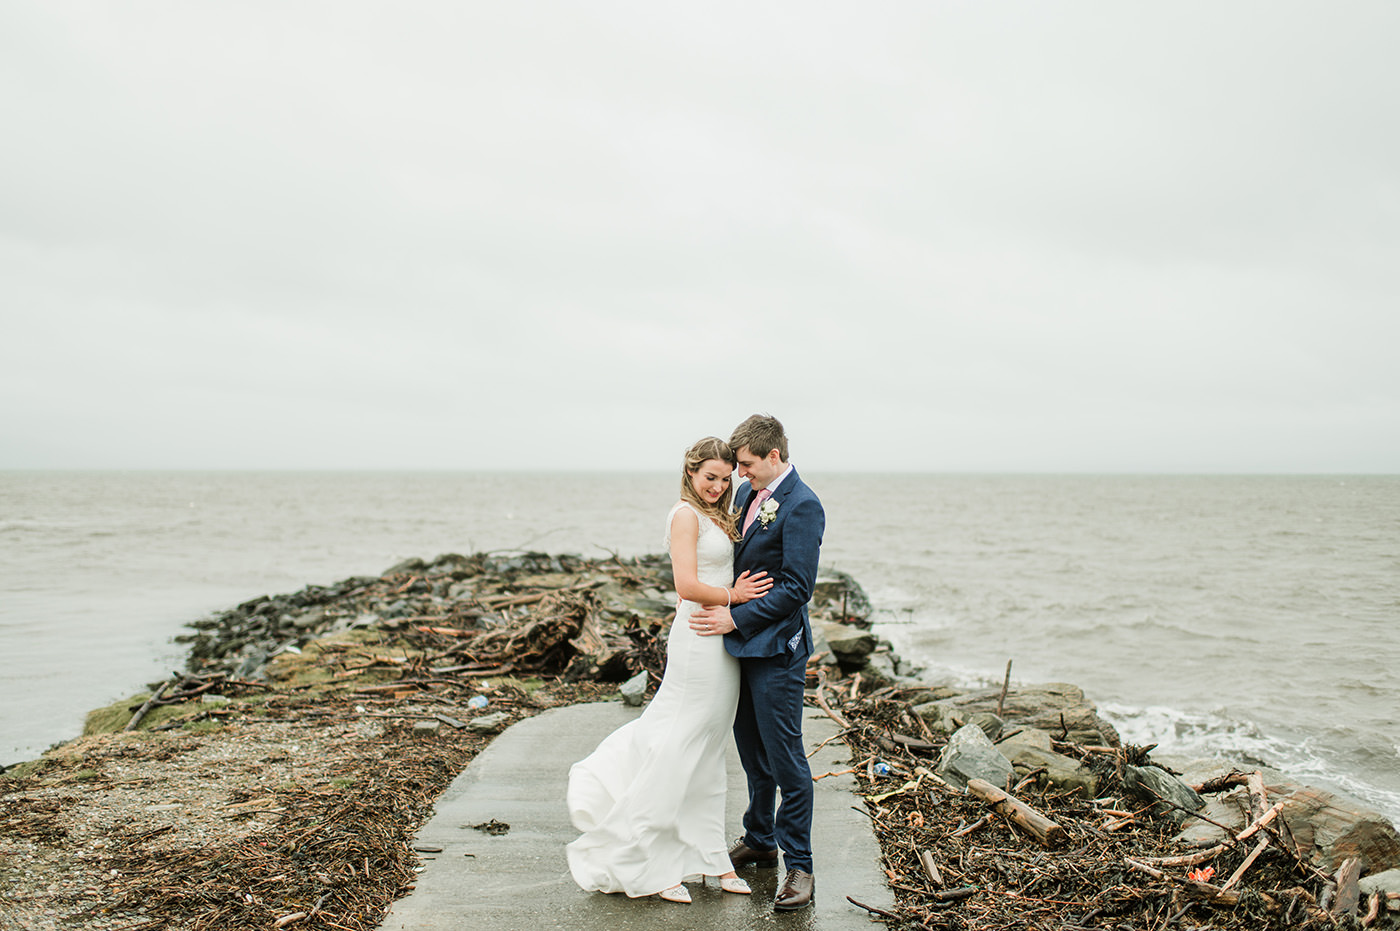 Maried couple during a stormy weather in Donegal